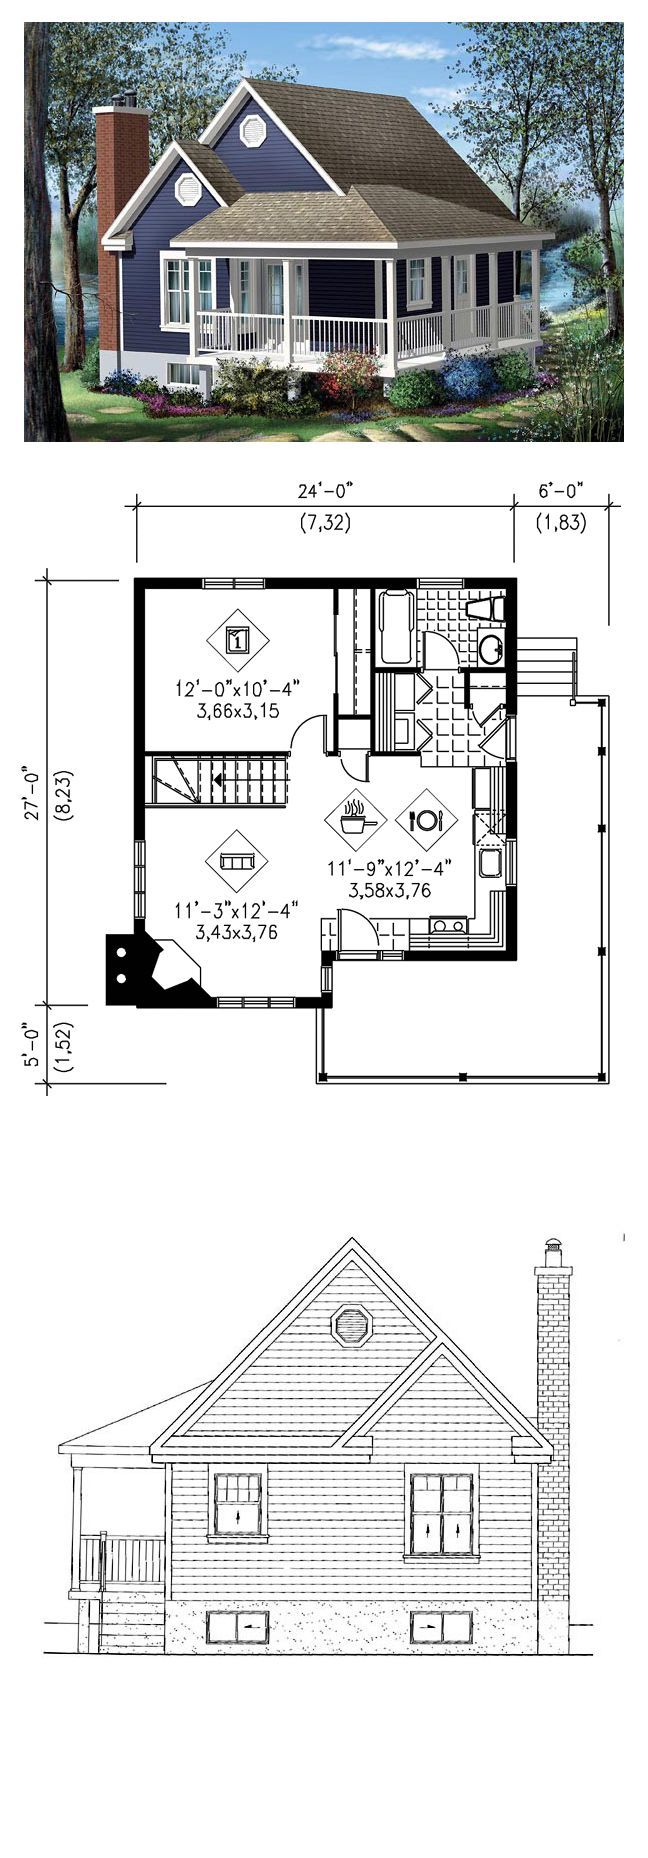 De 25 bedste id er til miniatureboliger p pinterest for Cottage house plans for narrow lots